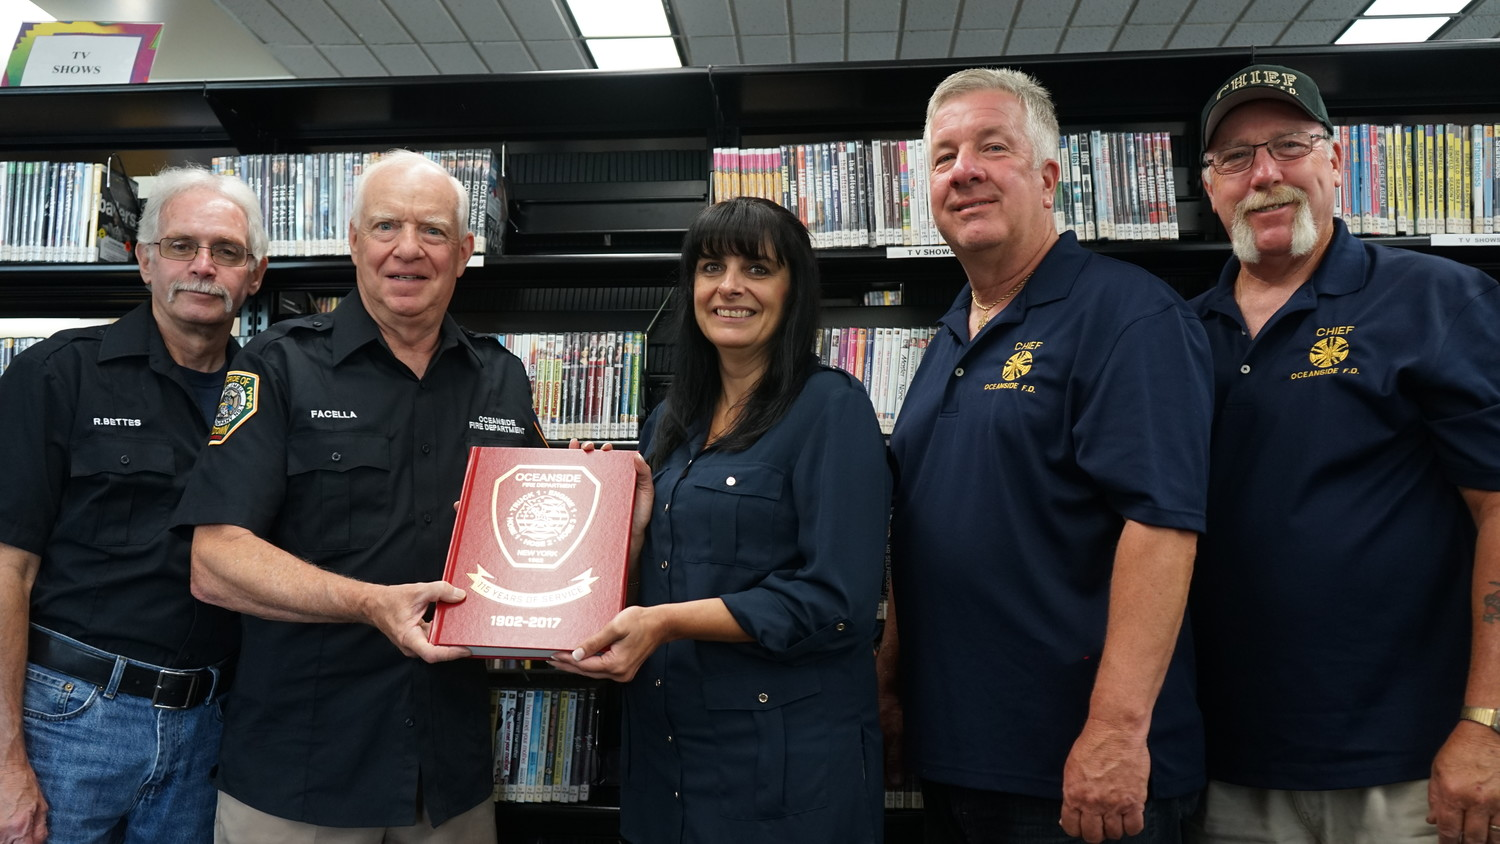 Oceanside firefighters Bob Bettes, left, Paul Facella, Bill Lynch, Fred Robinson and Oceanside Library Director Chris Marra with a copy of their history of the Oceanside Fire Department donated to the library for future generations of Oceanside history lovers to enjoy.